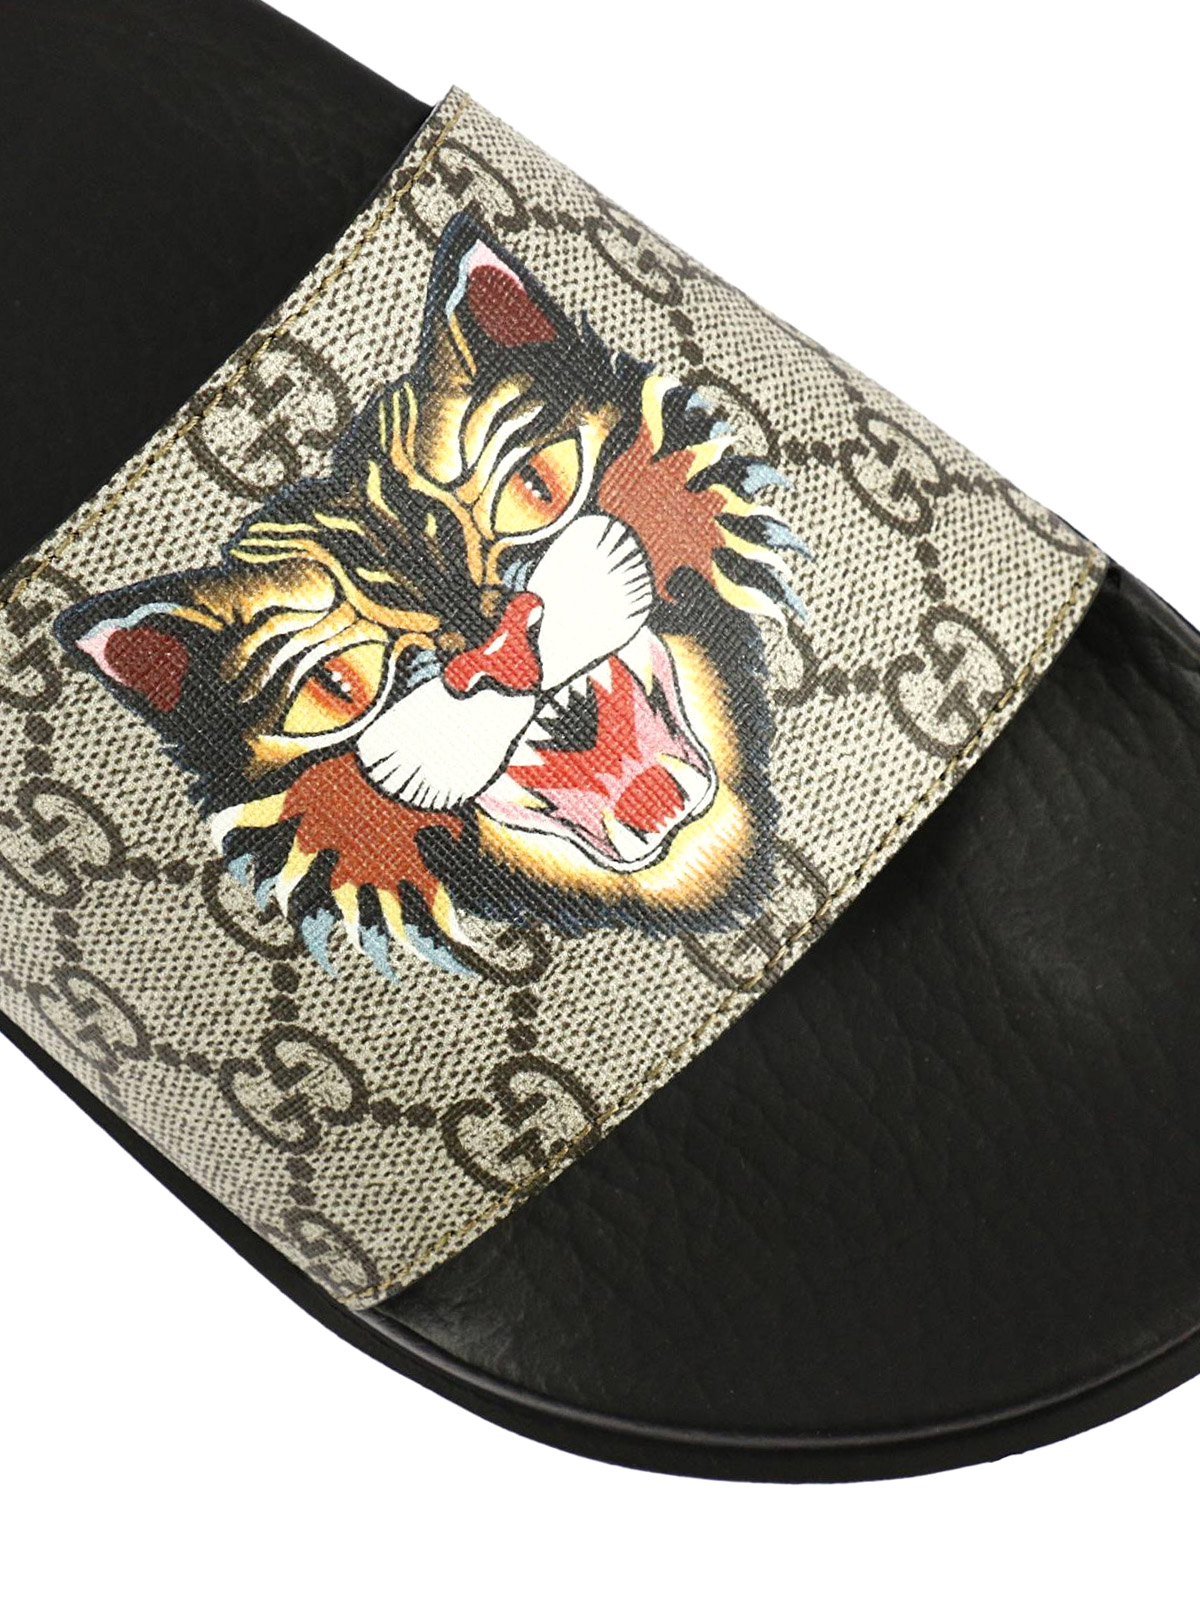 715db8b68fd Gucci - Angry Cat GG supreme slides - sandals - 474282 9A400 8919